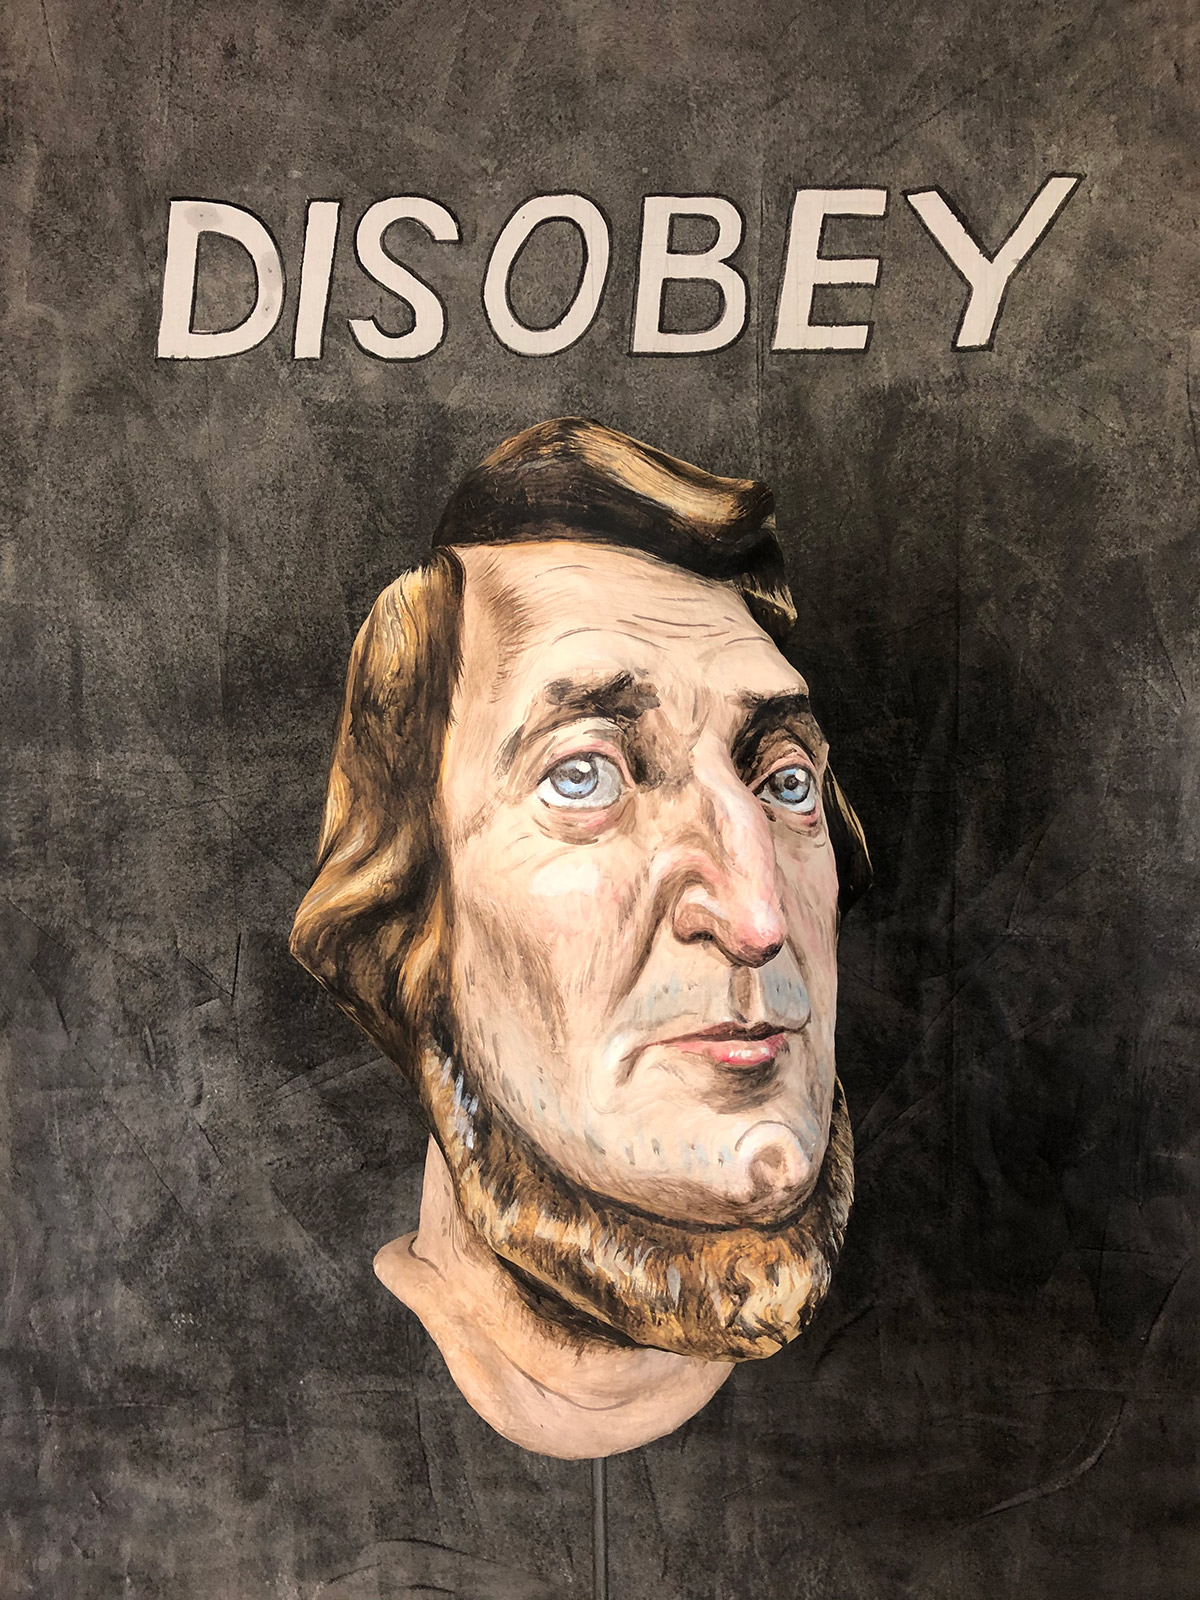 papier mache bust of Thoreau with the word disobey printed on fabric over the bust